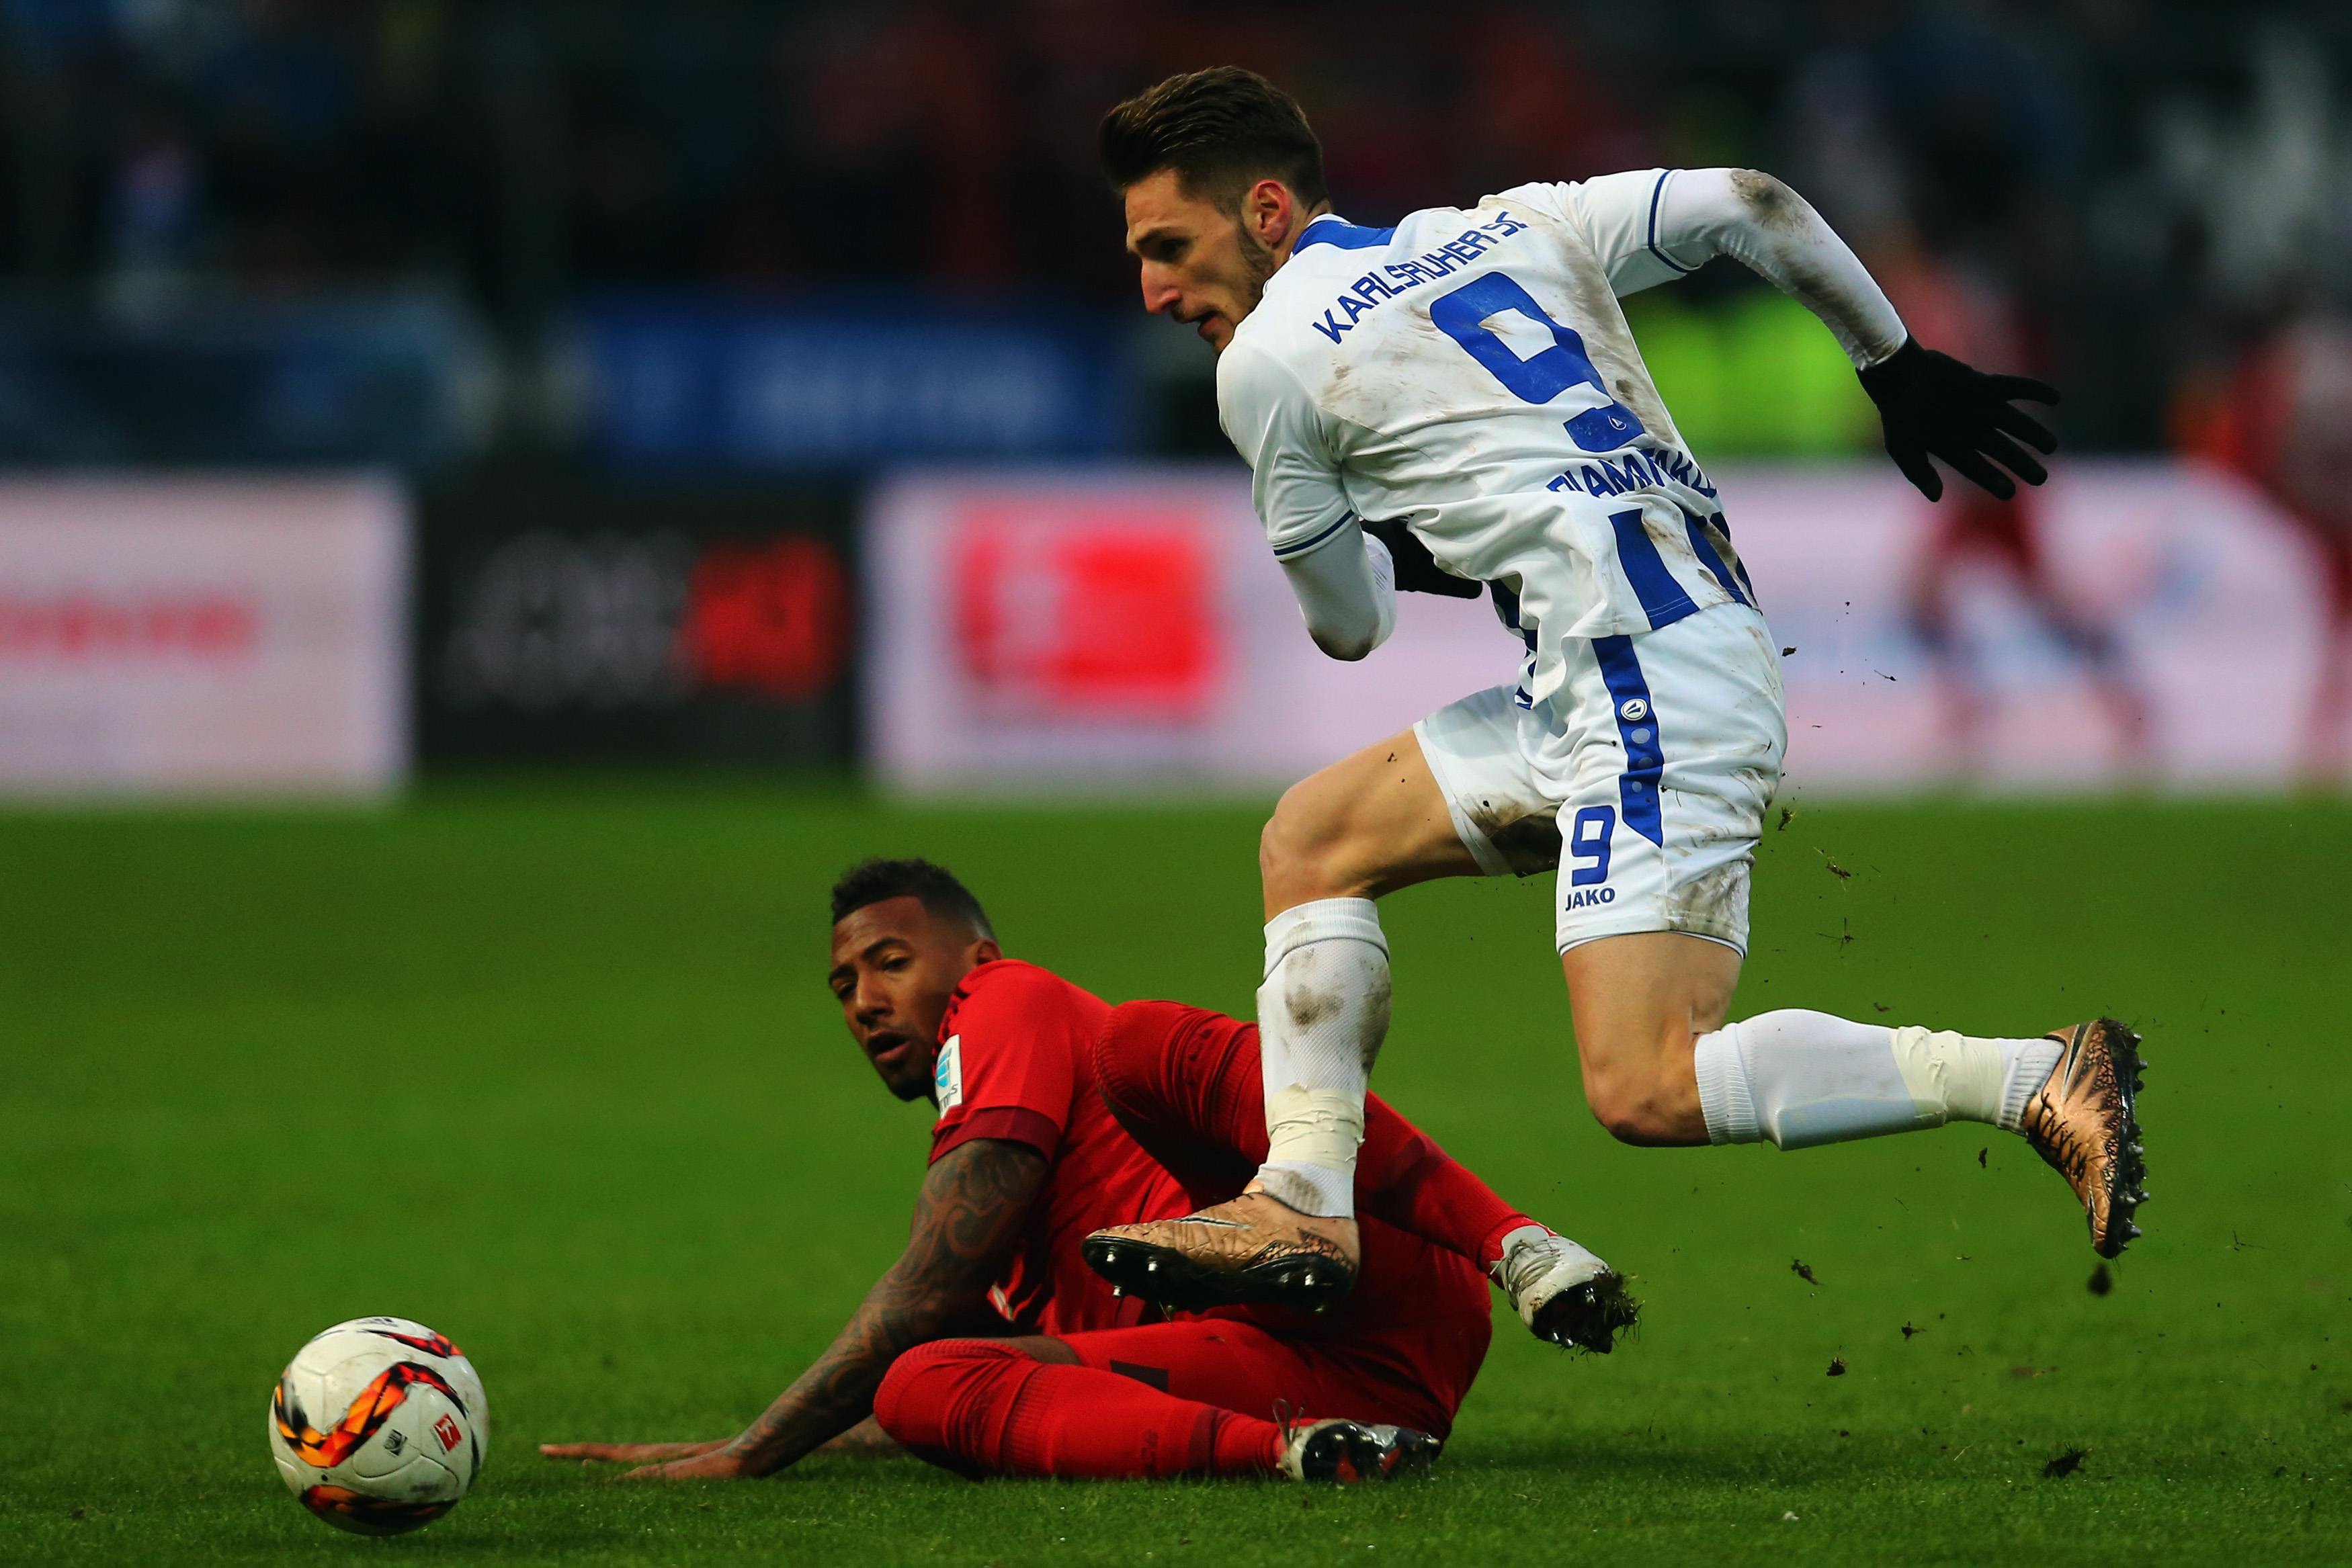 KARLSRUHE, GERMANY - JANUARY 16: Dimitrios Diamantakos of Karlsruhe is challenged by Jerome Boateng of Muenchen during a friendly match between Karlsruher SC and FC Bayern Muenchen at Wildpark Stadium on January 16, 2016 in Karlsruhe, Germany. (Photo by Alex Grimm/Bongarts/Getty Images)